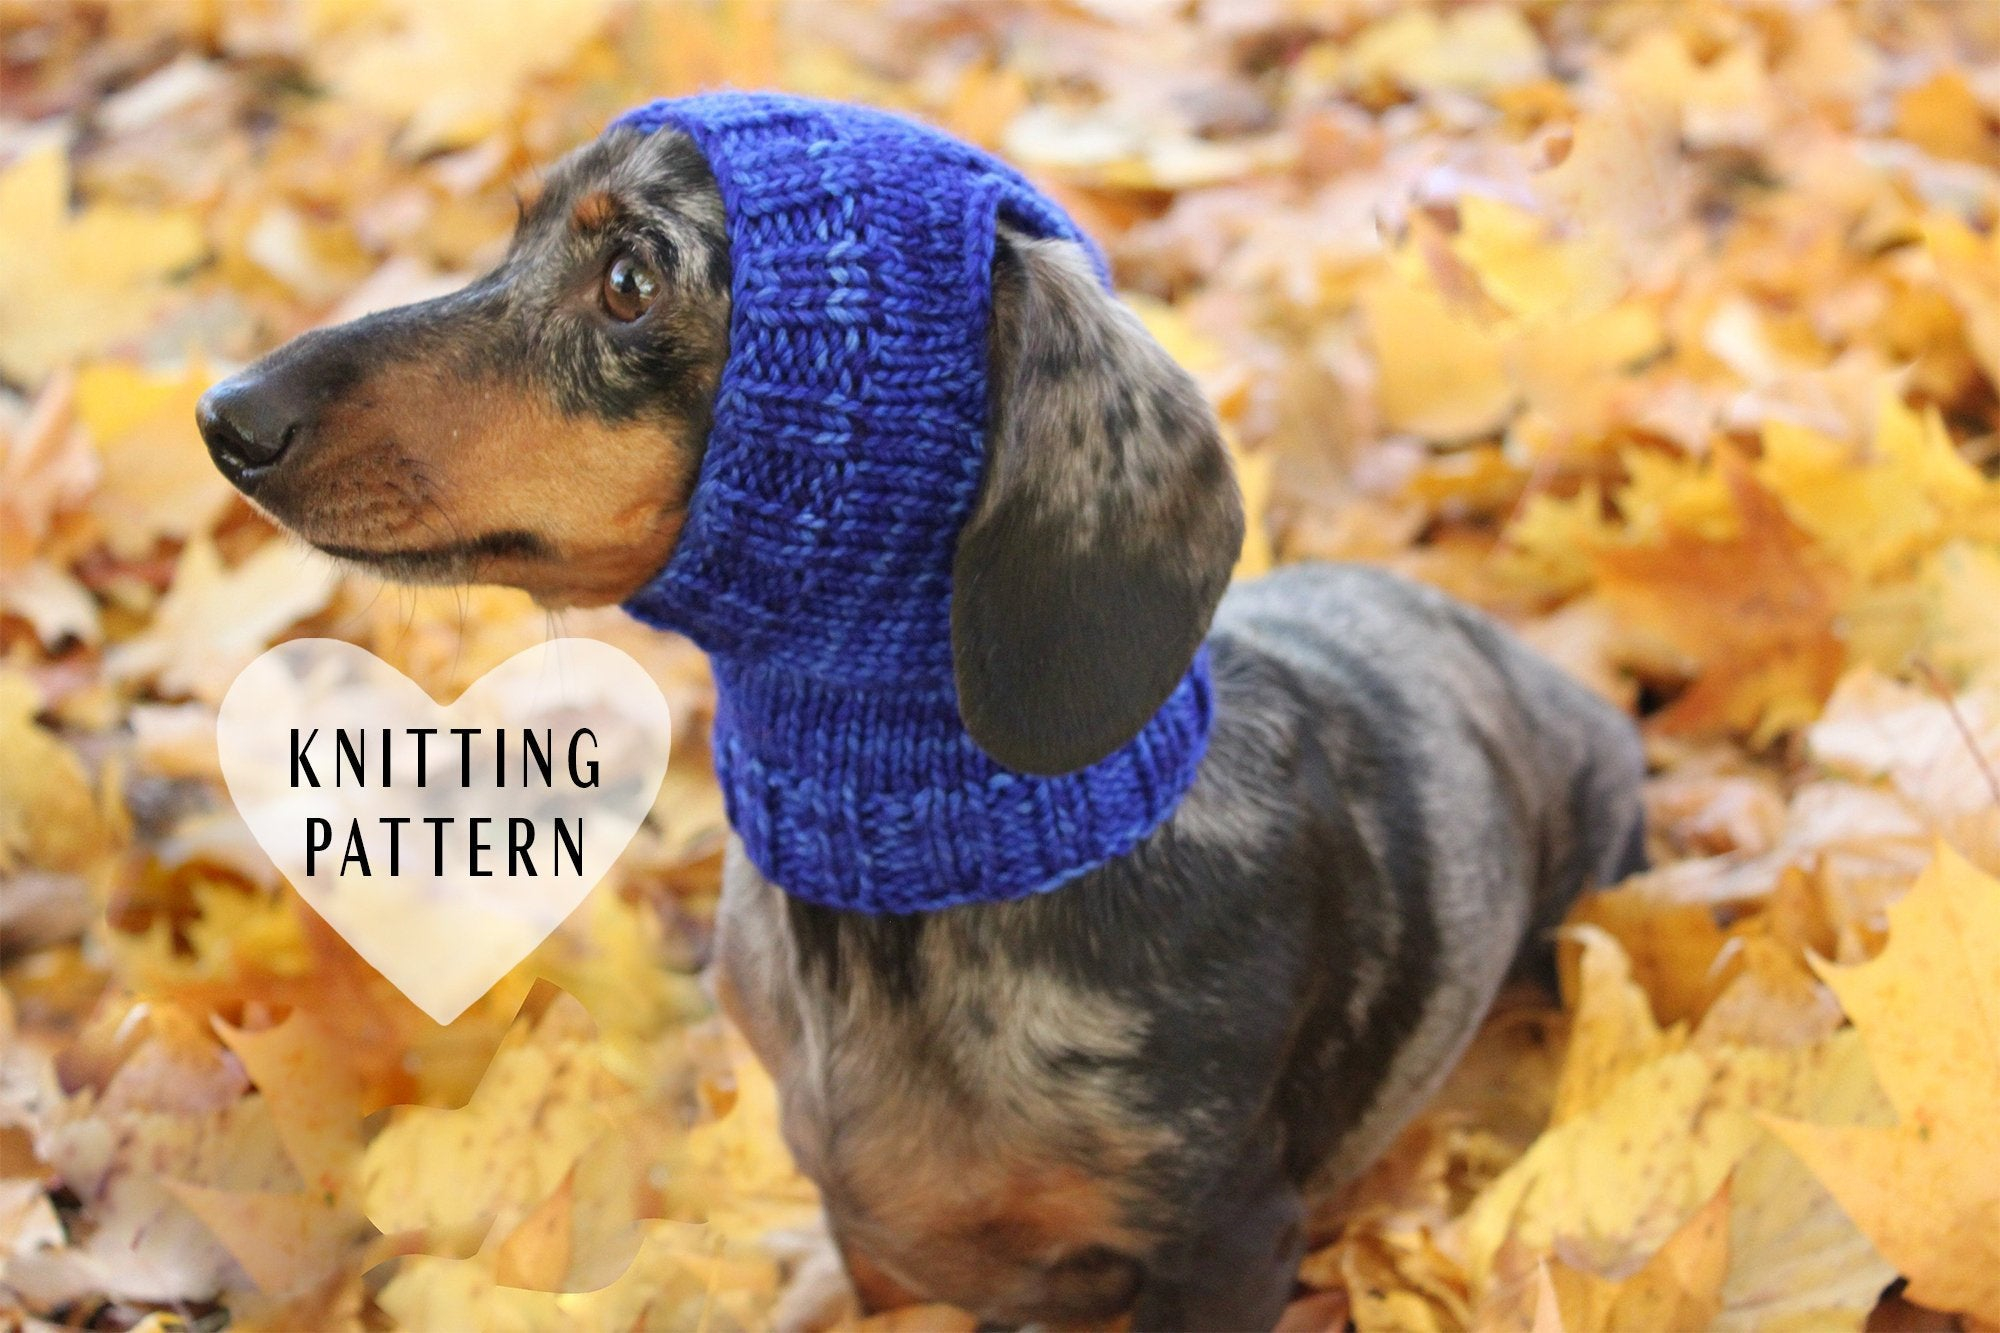 Dachshund Jumper Knitting Pattern Knitting Pattern Mini Dachshund Dog Hat Small Dog Hat Dog Clothes Knitted Hat Dog Fashion Dogs Pets Open Ear Dog Hat Malabrigo Yarn